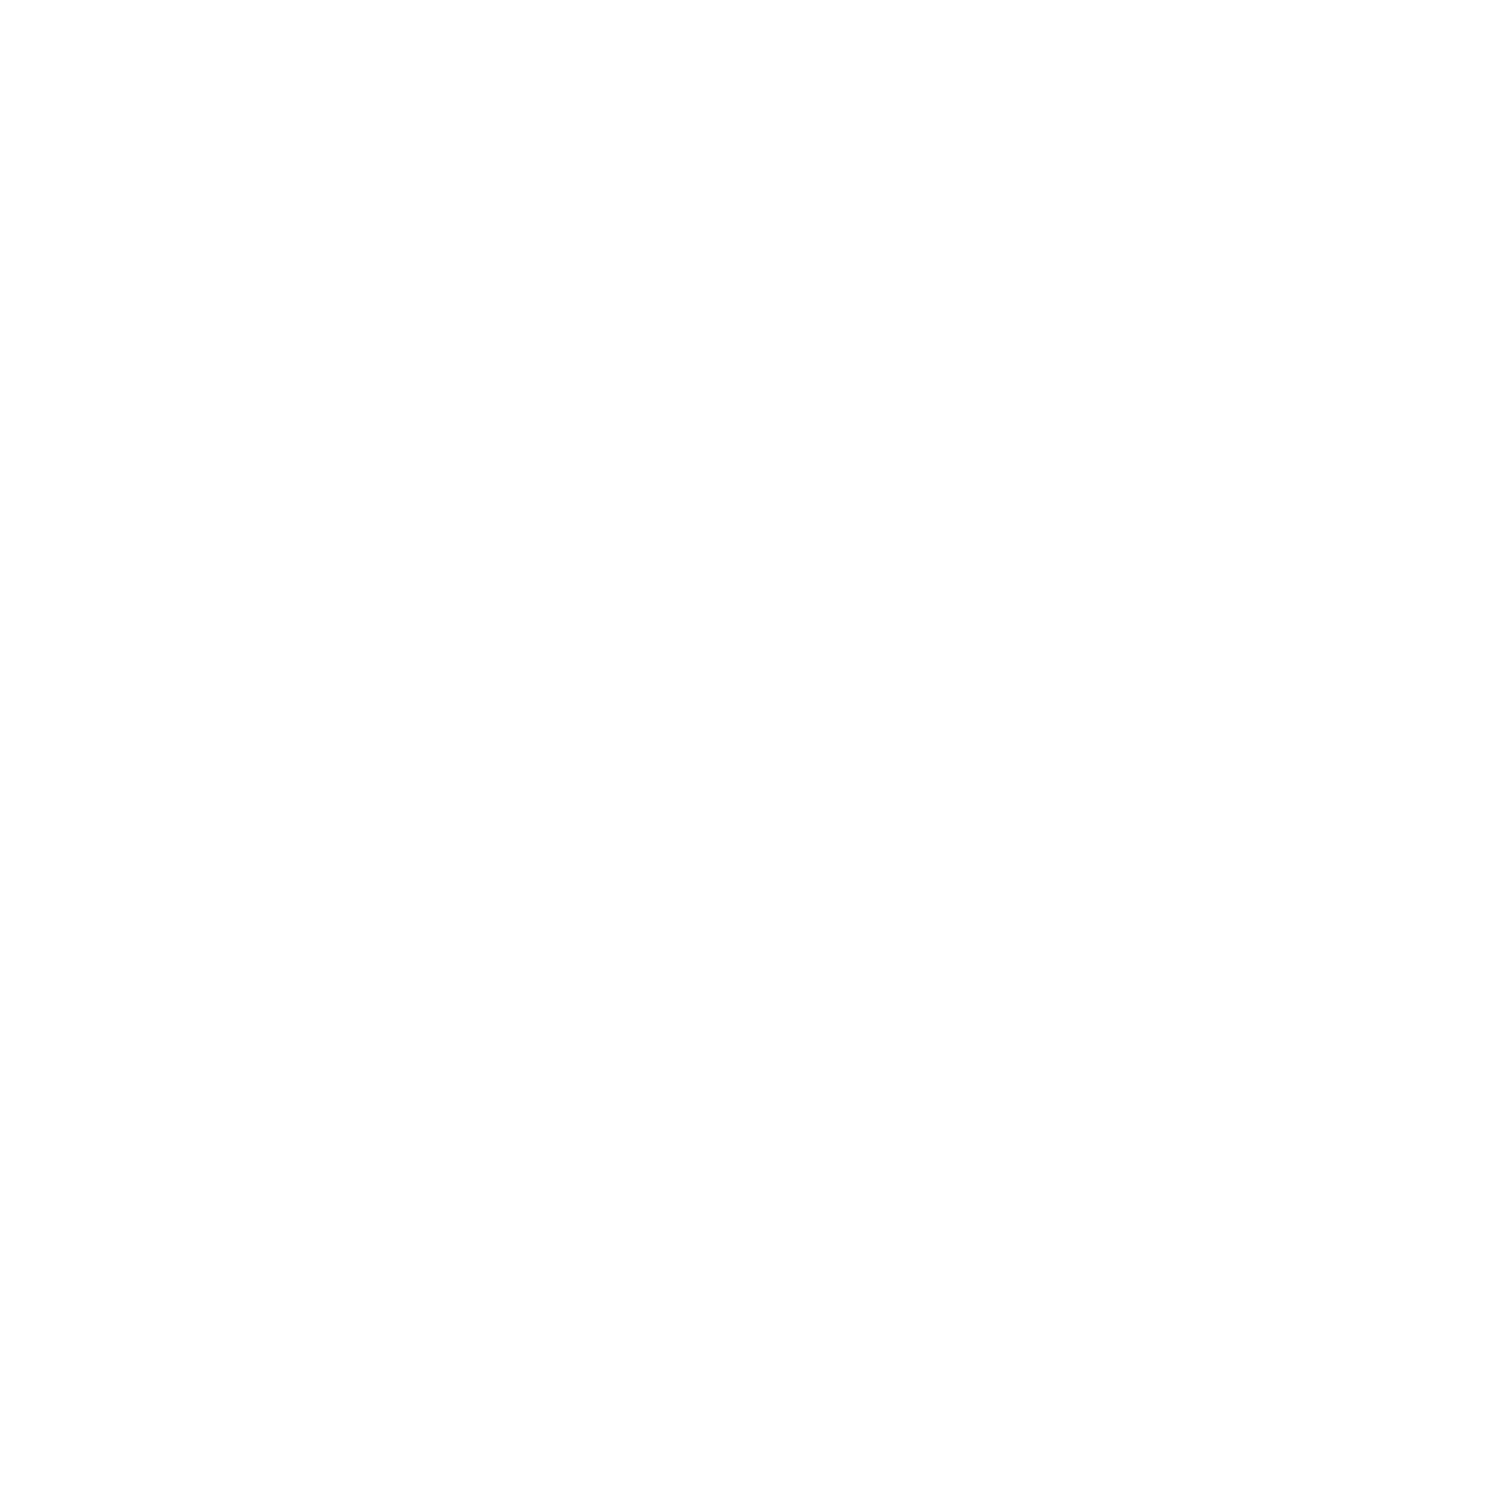 ILL SOUNDS